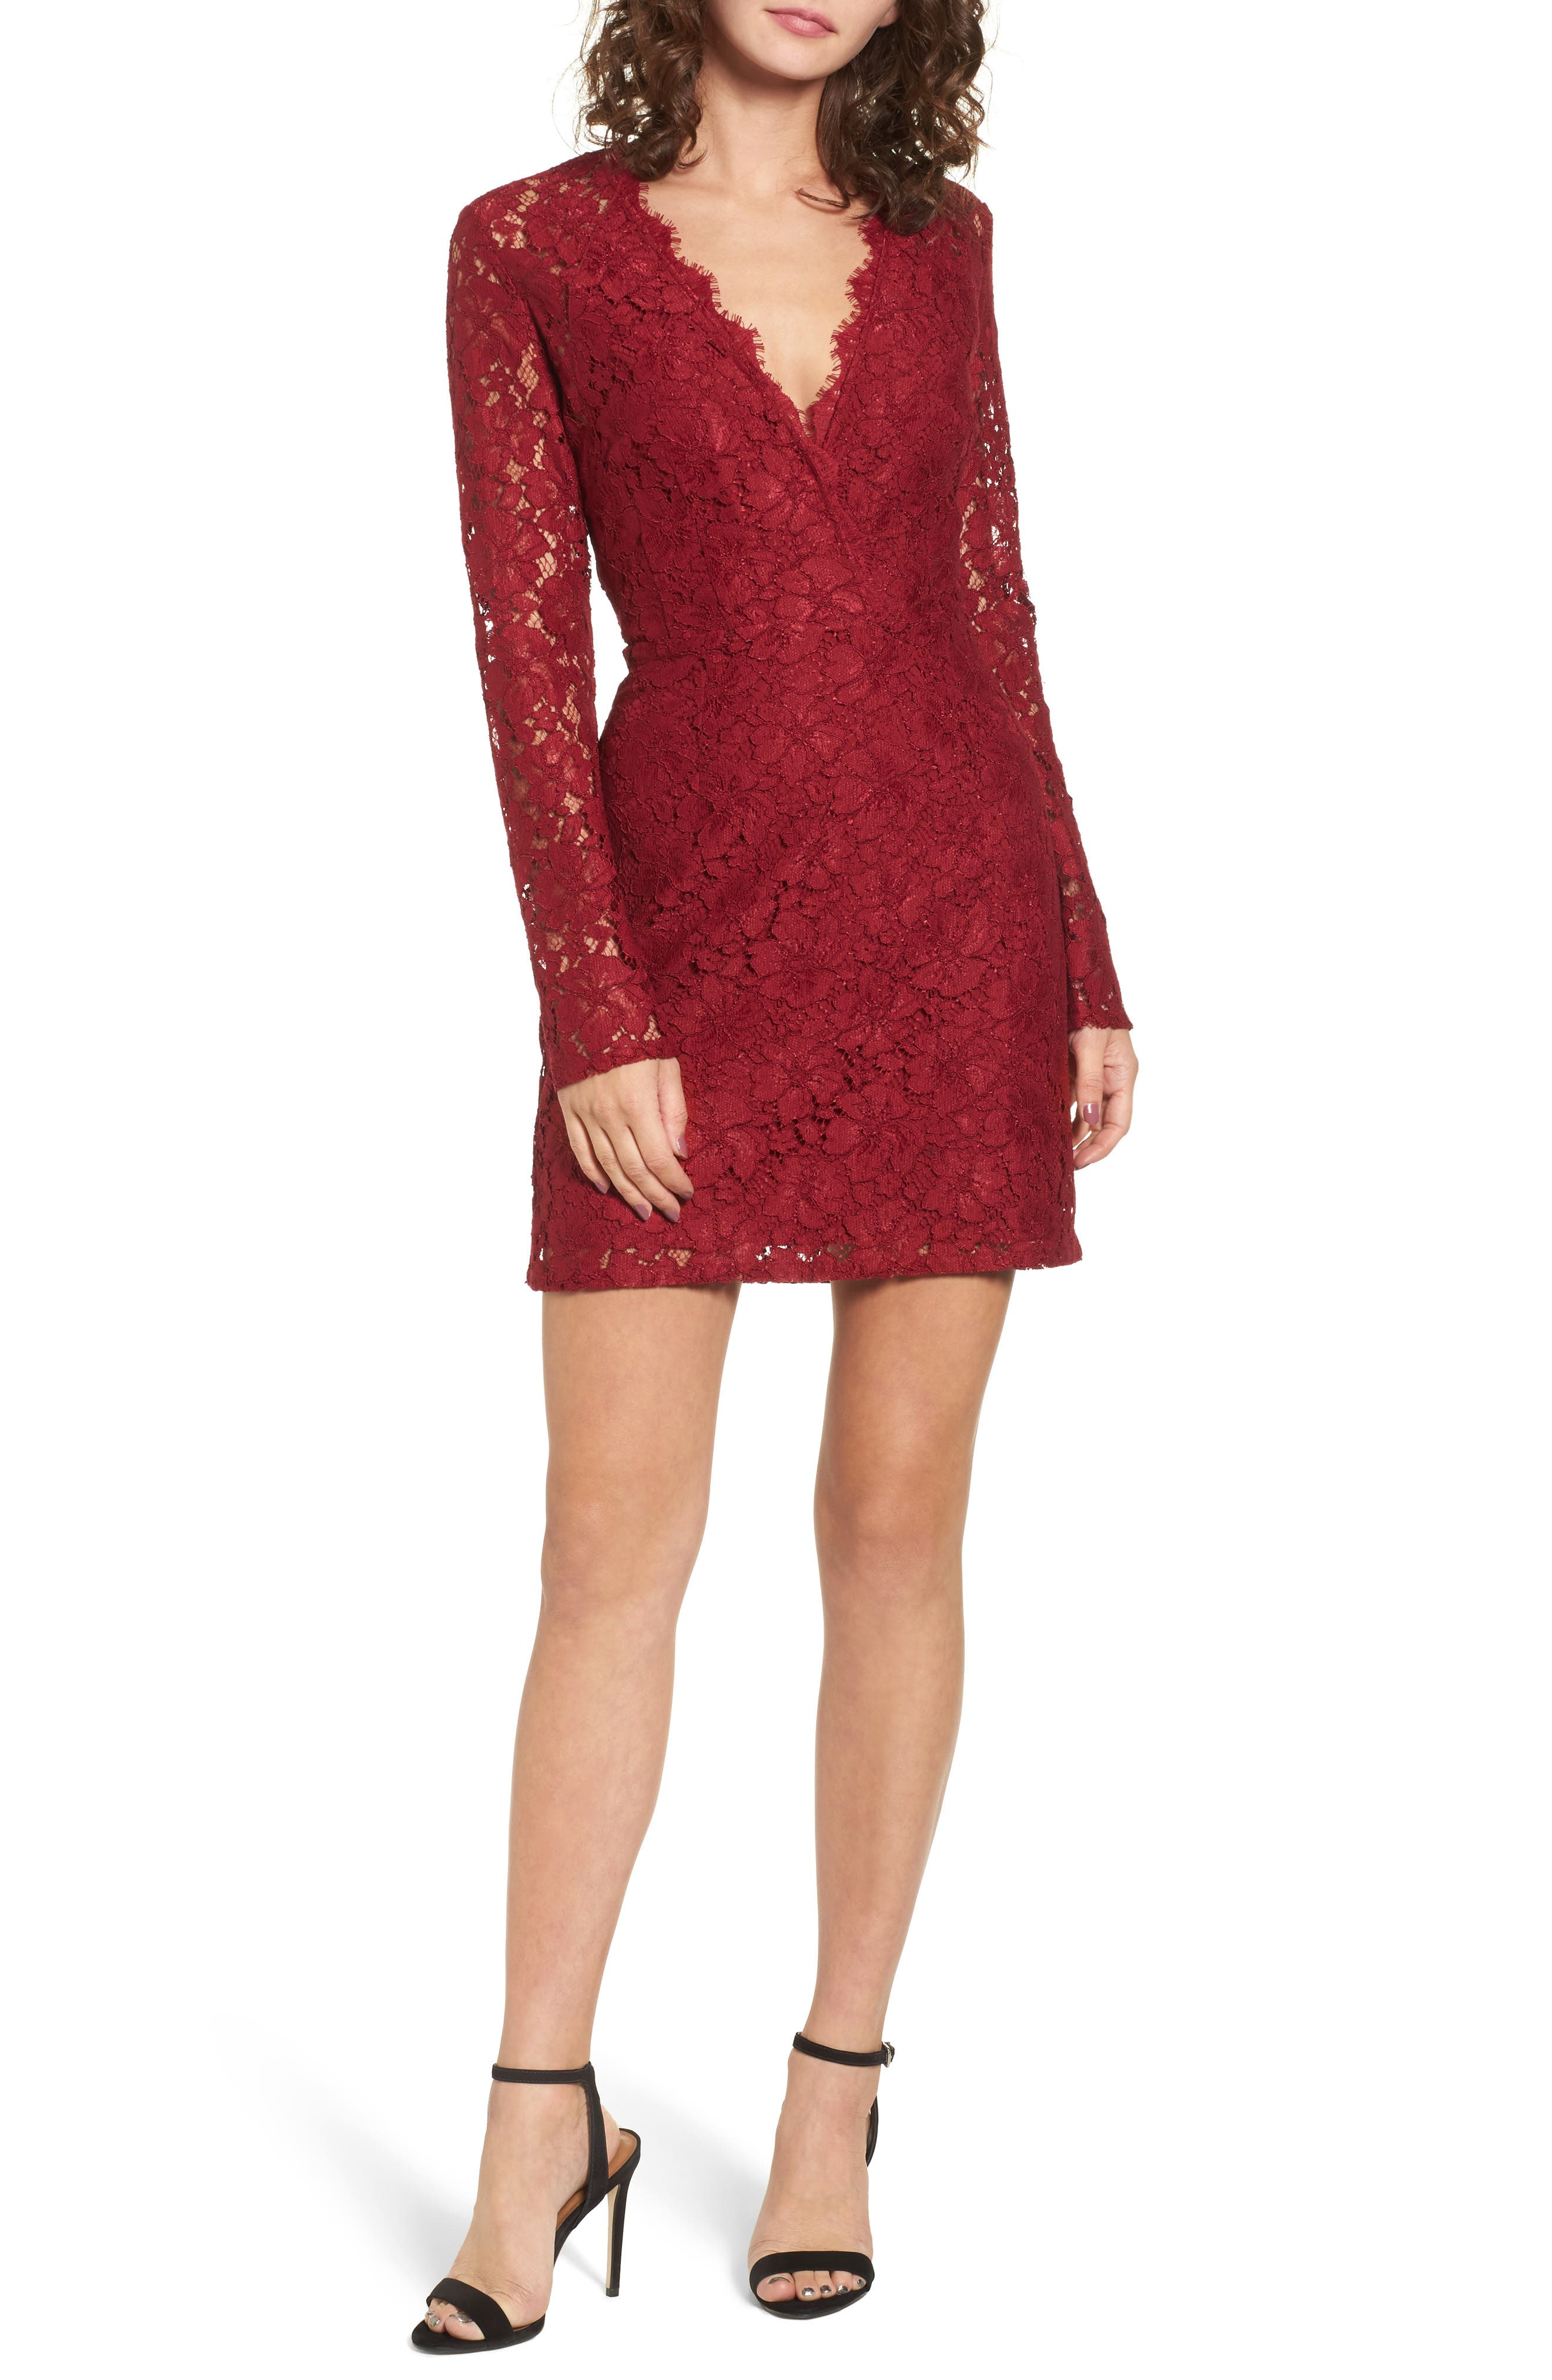 Mimi chica long sleeve lace dress